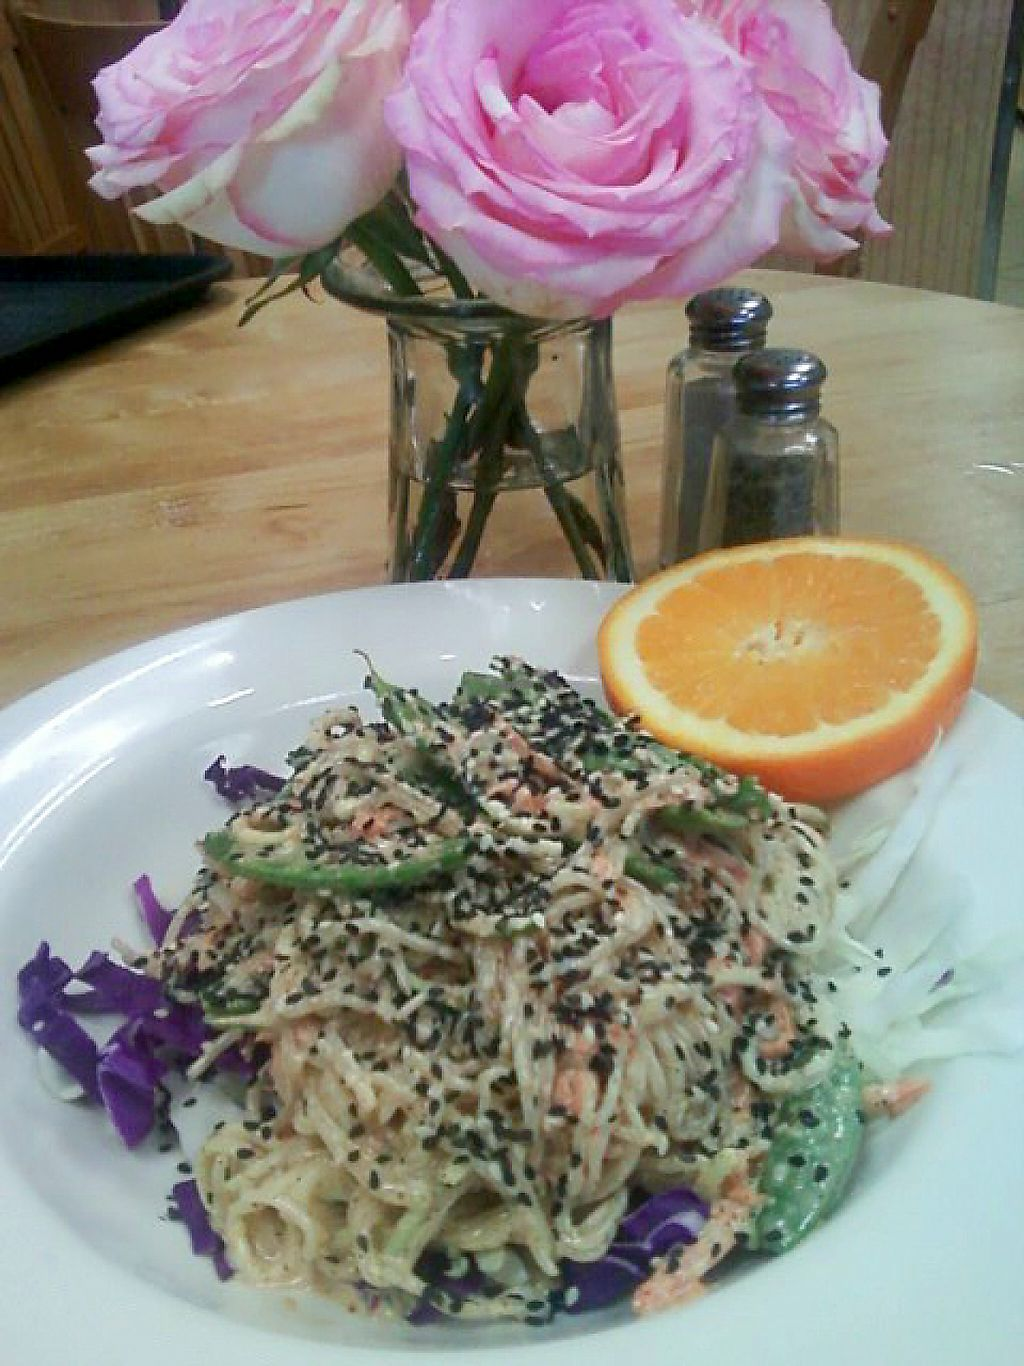 """Photo of Food and Thought  by <a href=""""/members/profile/mshelene"""">mshelene</a> <br/>Raw meal of the day: Raw Pad Thai <br/> April 12, 2017  - <a href='/contact/abuse/image/13329/247309'>Report</a>"""